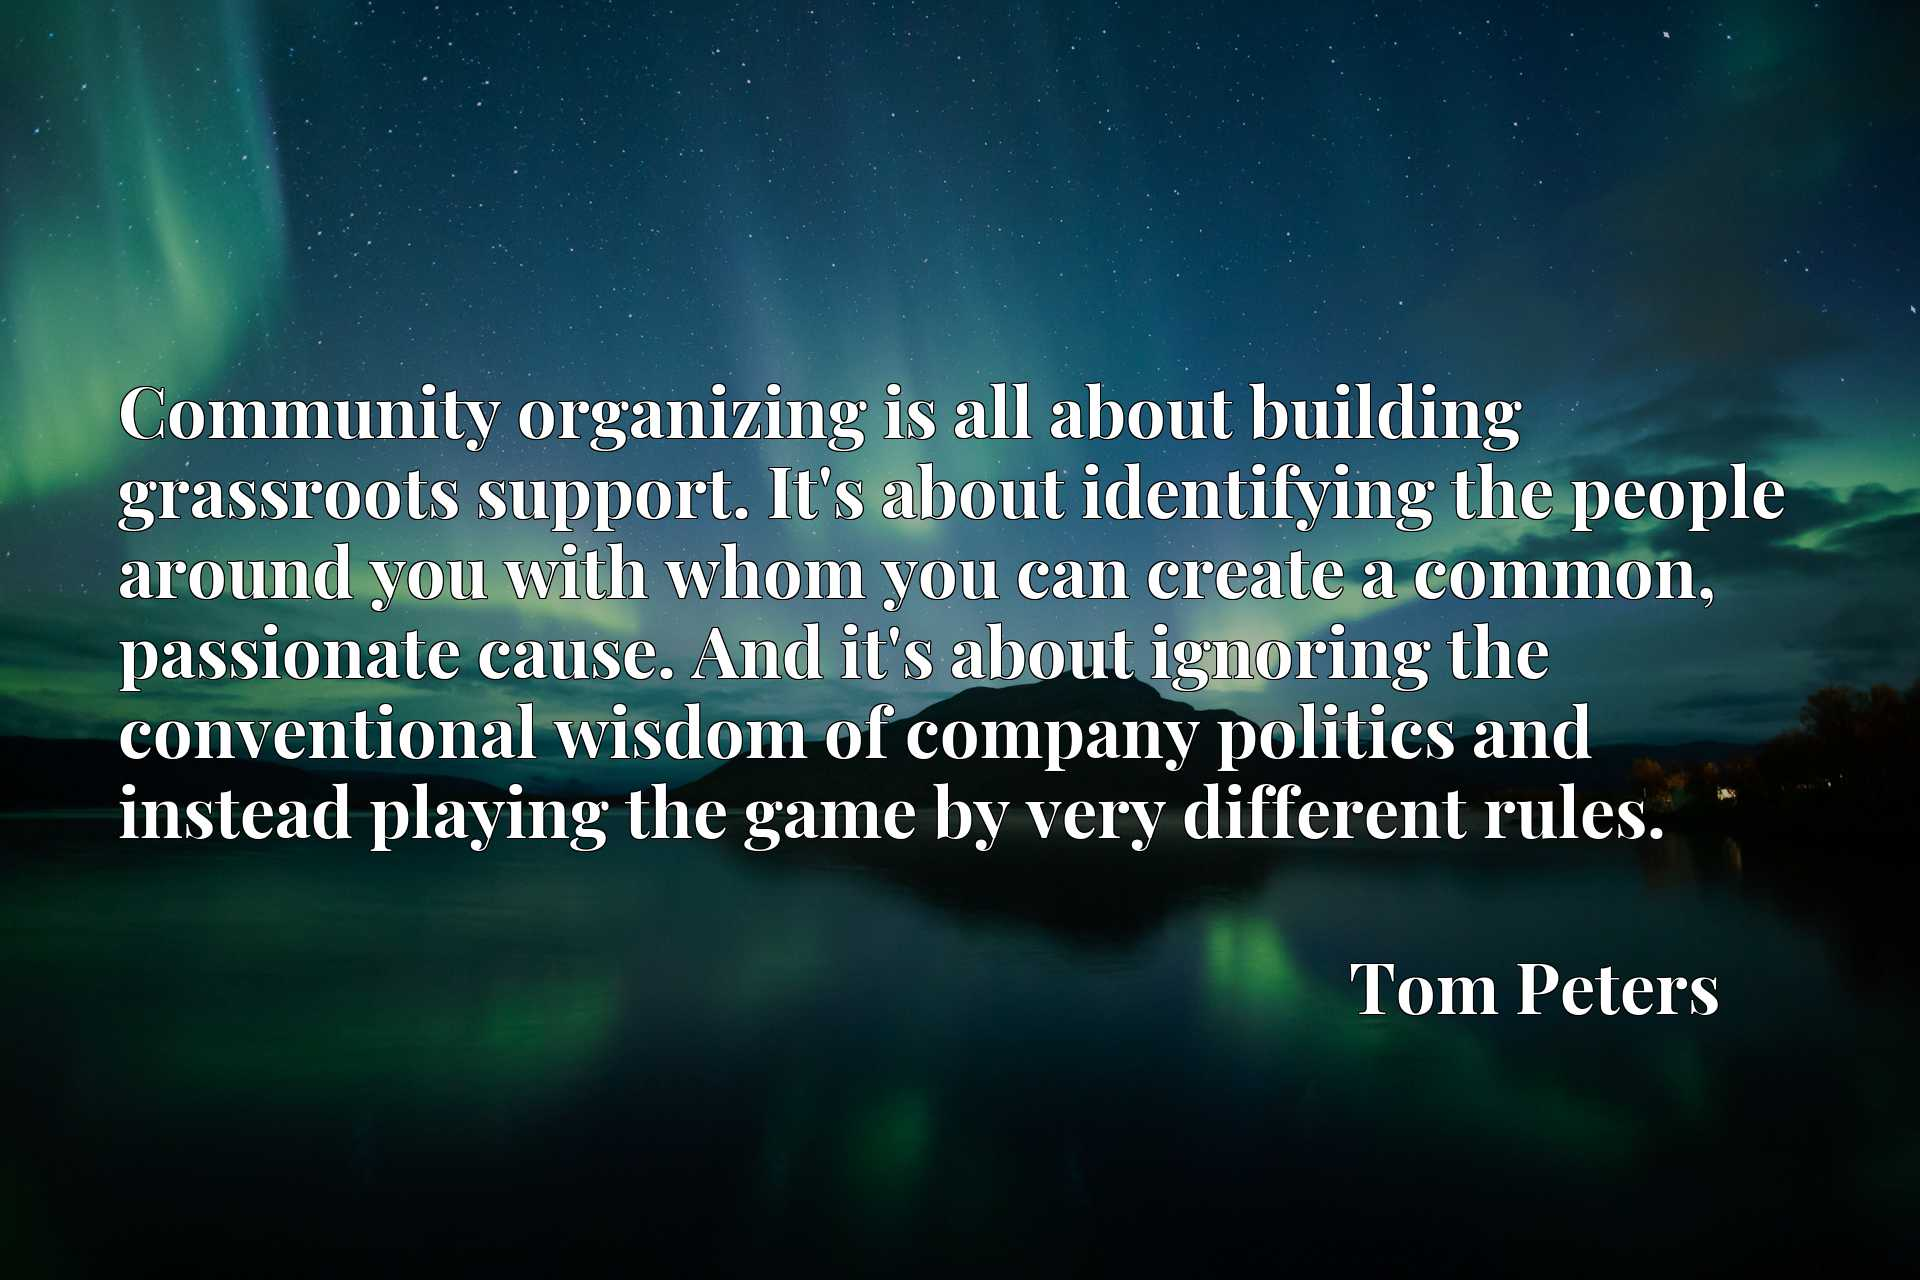 Community organizing is all about building grassroots support. It's about identifying the people around you with whom you can create a common, passionate cause. And it's about ignoring the conventional wisdom of company politics and instead playing the game by very different rules.